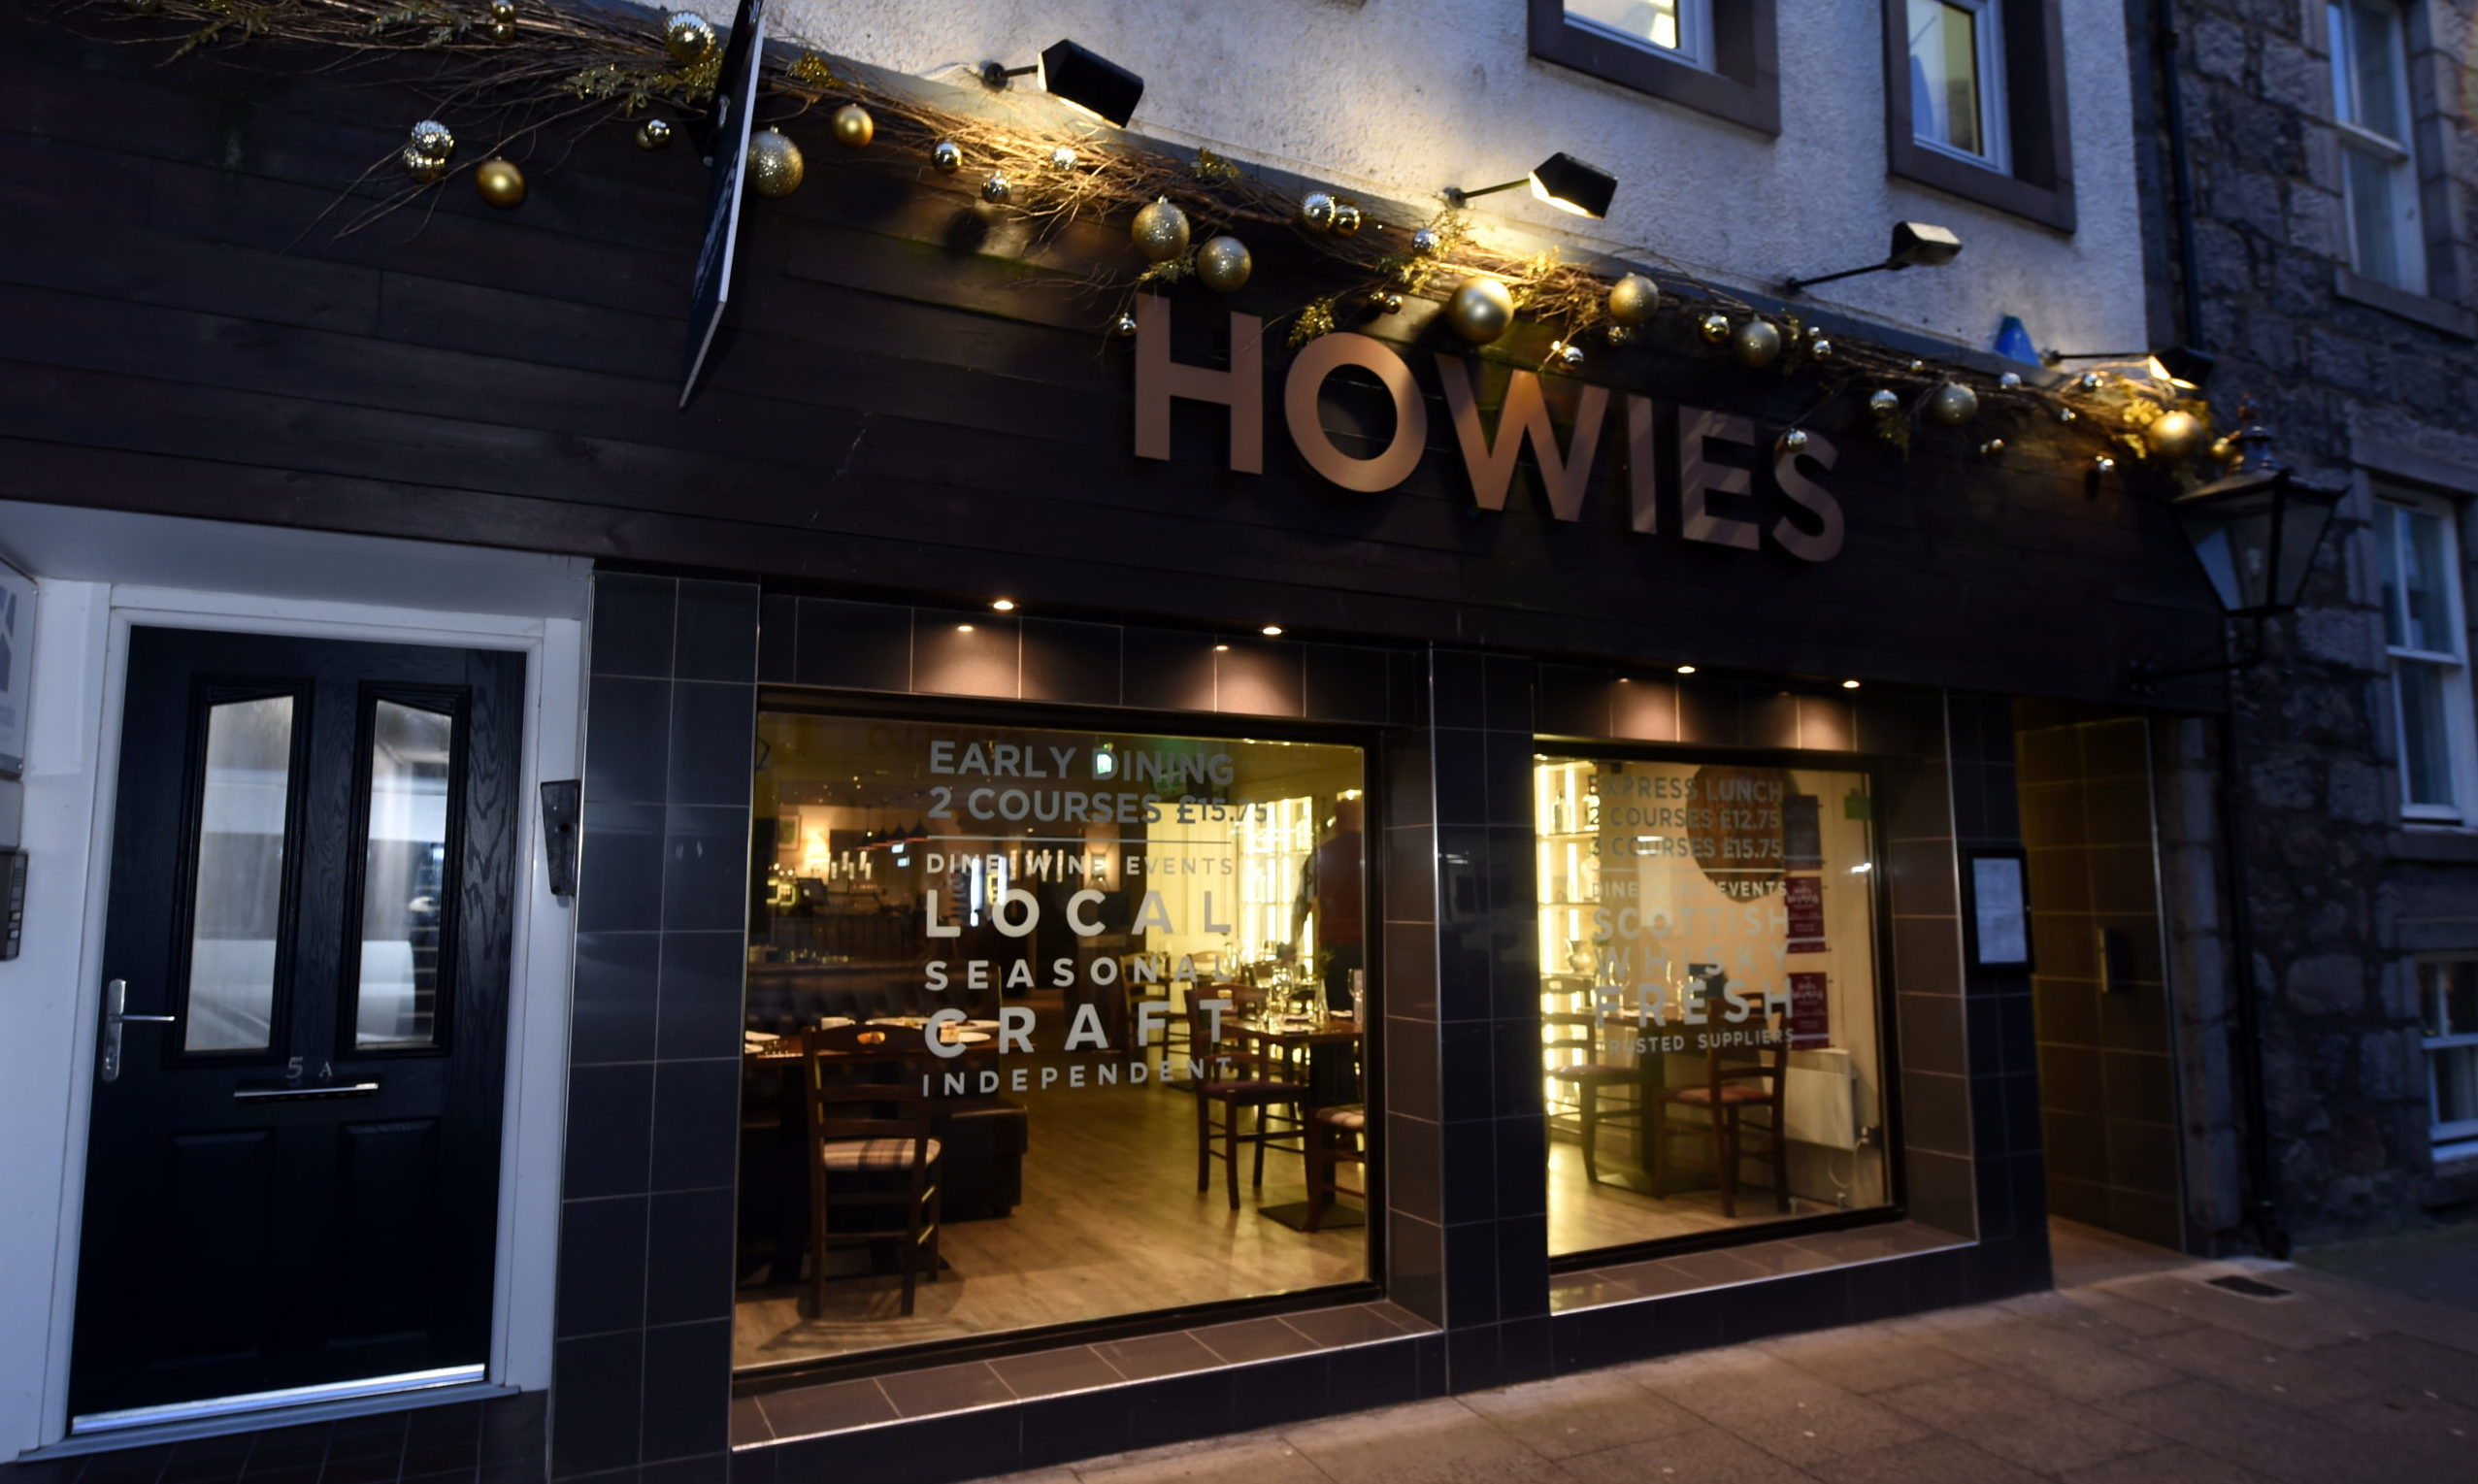 Howies on Chapel Street, Aberdeen. Picture by Jim Irvine